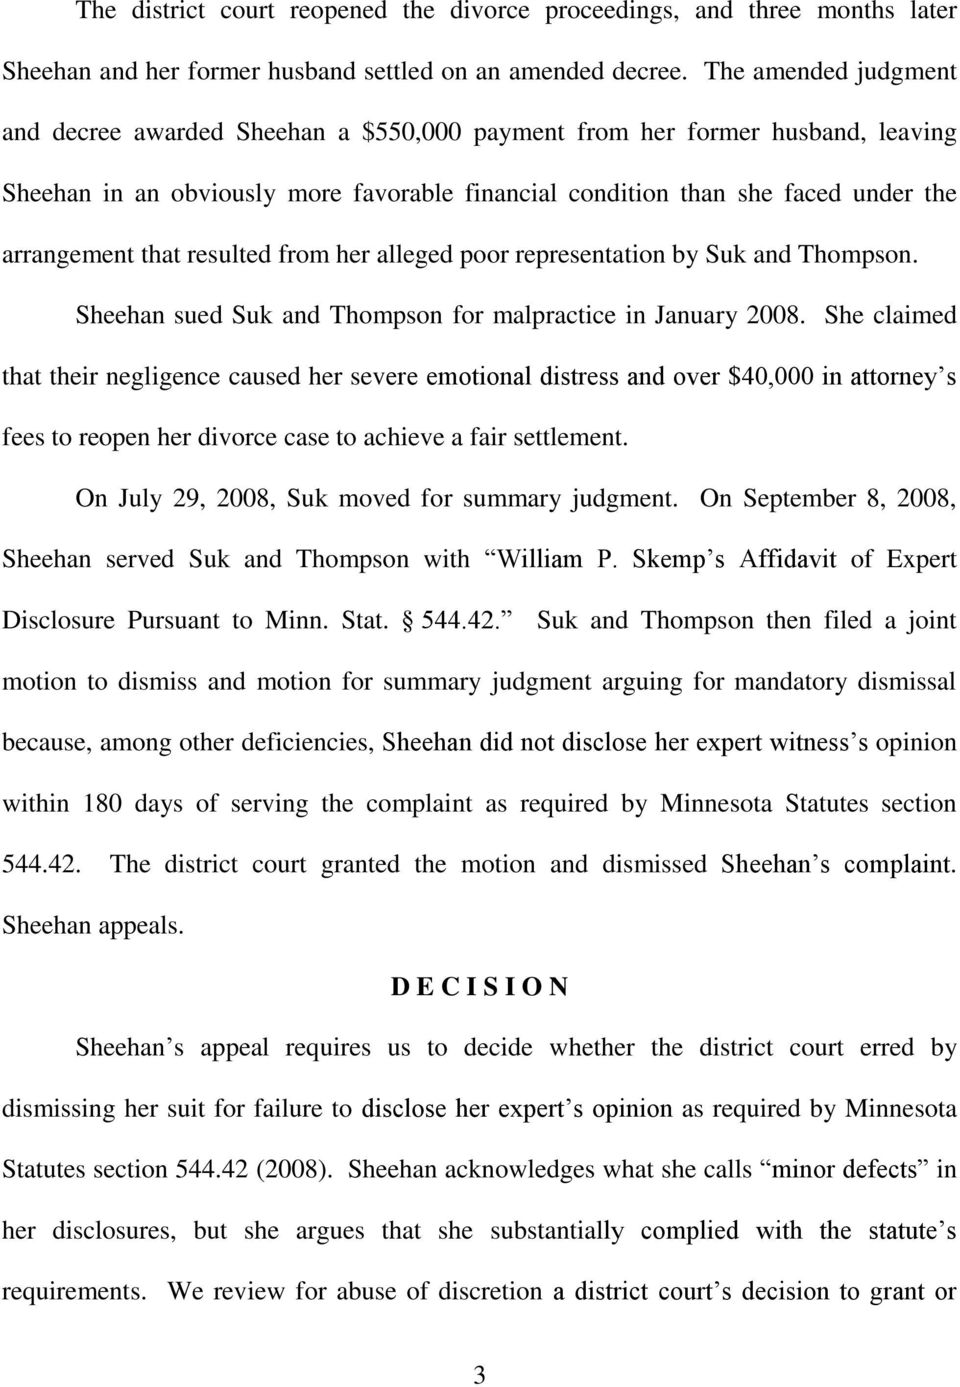 that resulted from her alleged poor representation by Suk and Thompson. Sheehan sued Suk and Thompson for malpractice in January 2008.